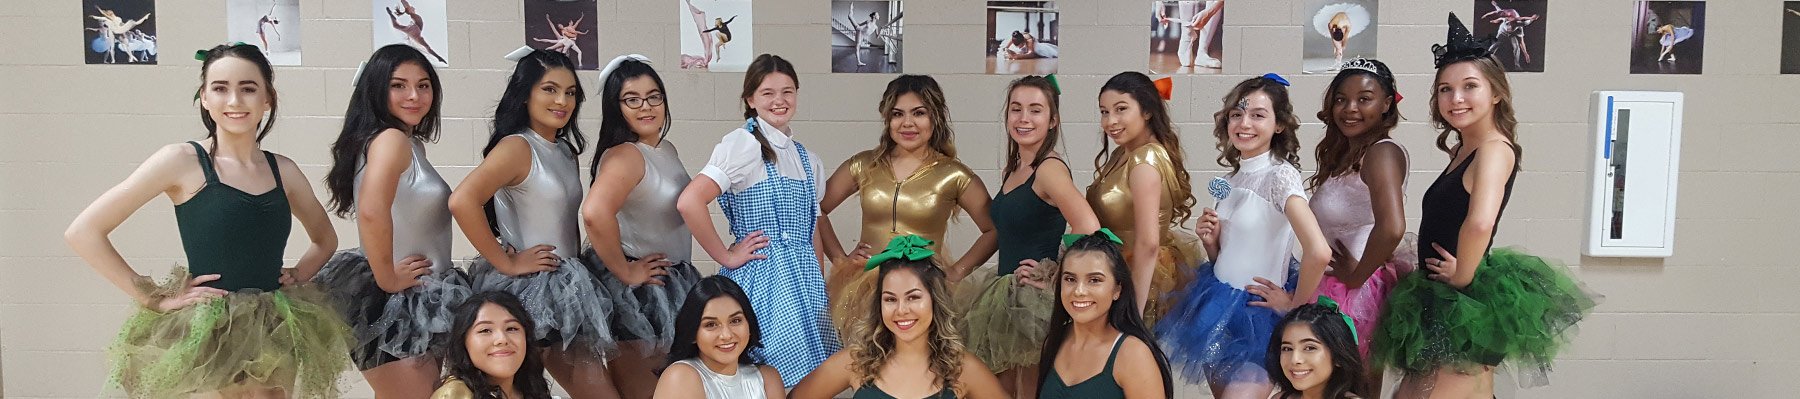 Students posing in play costumes